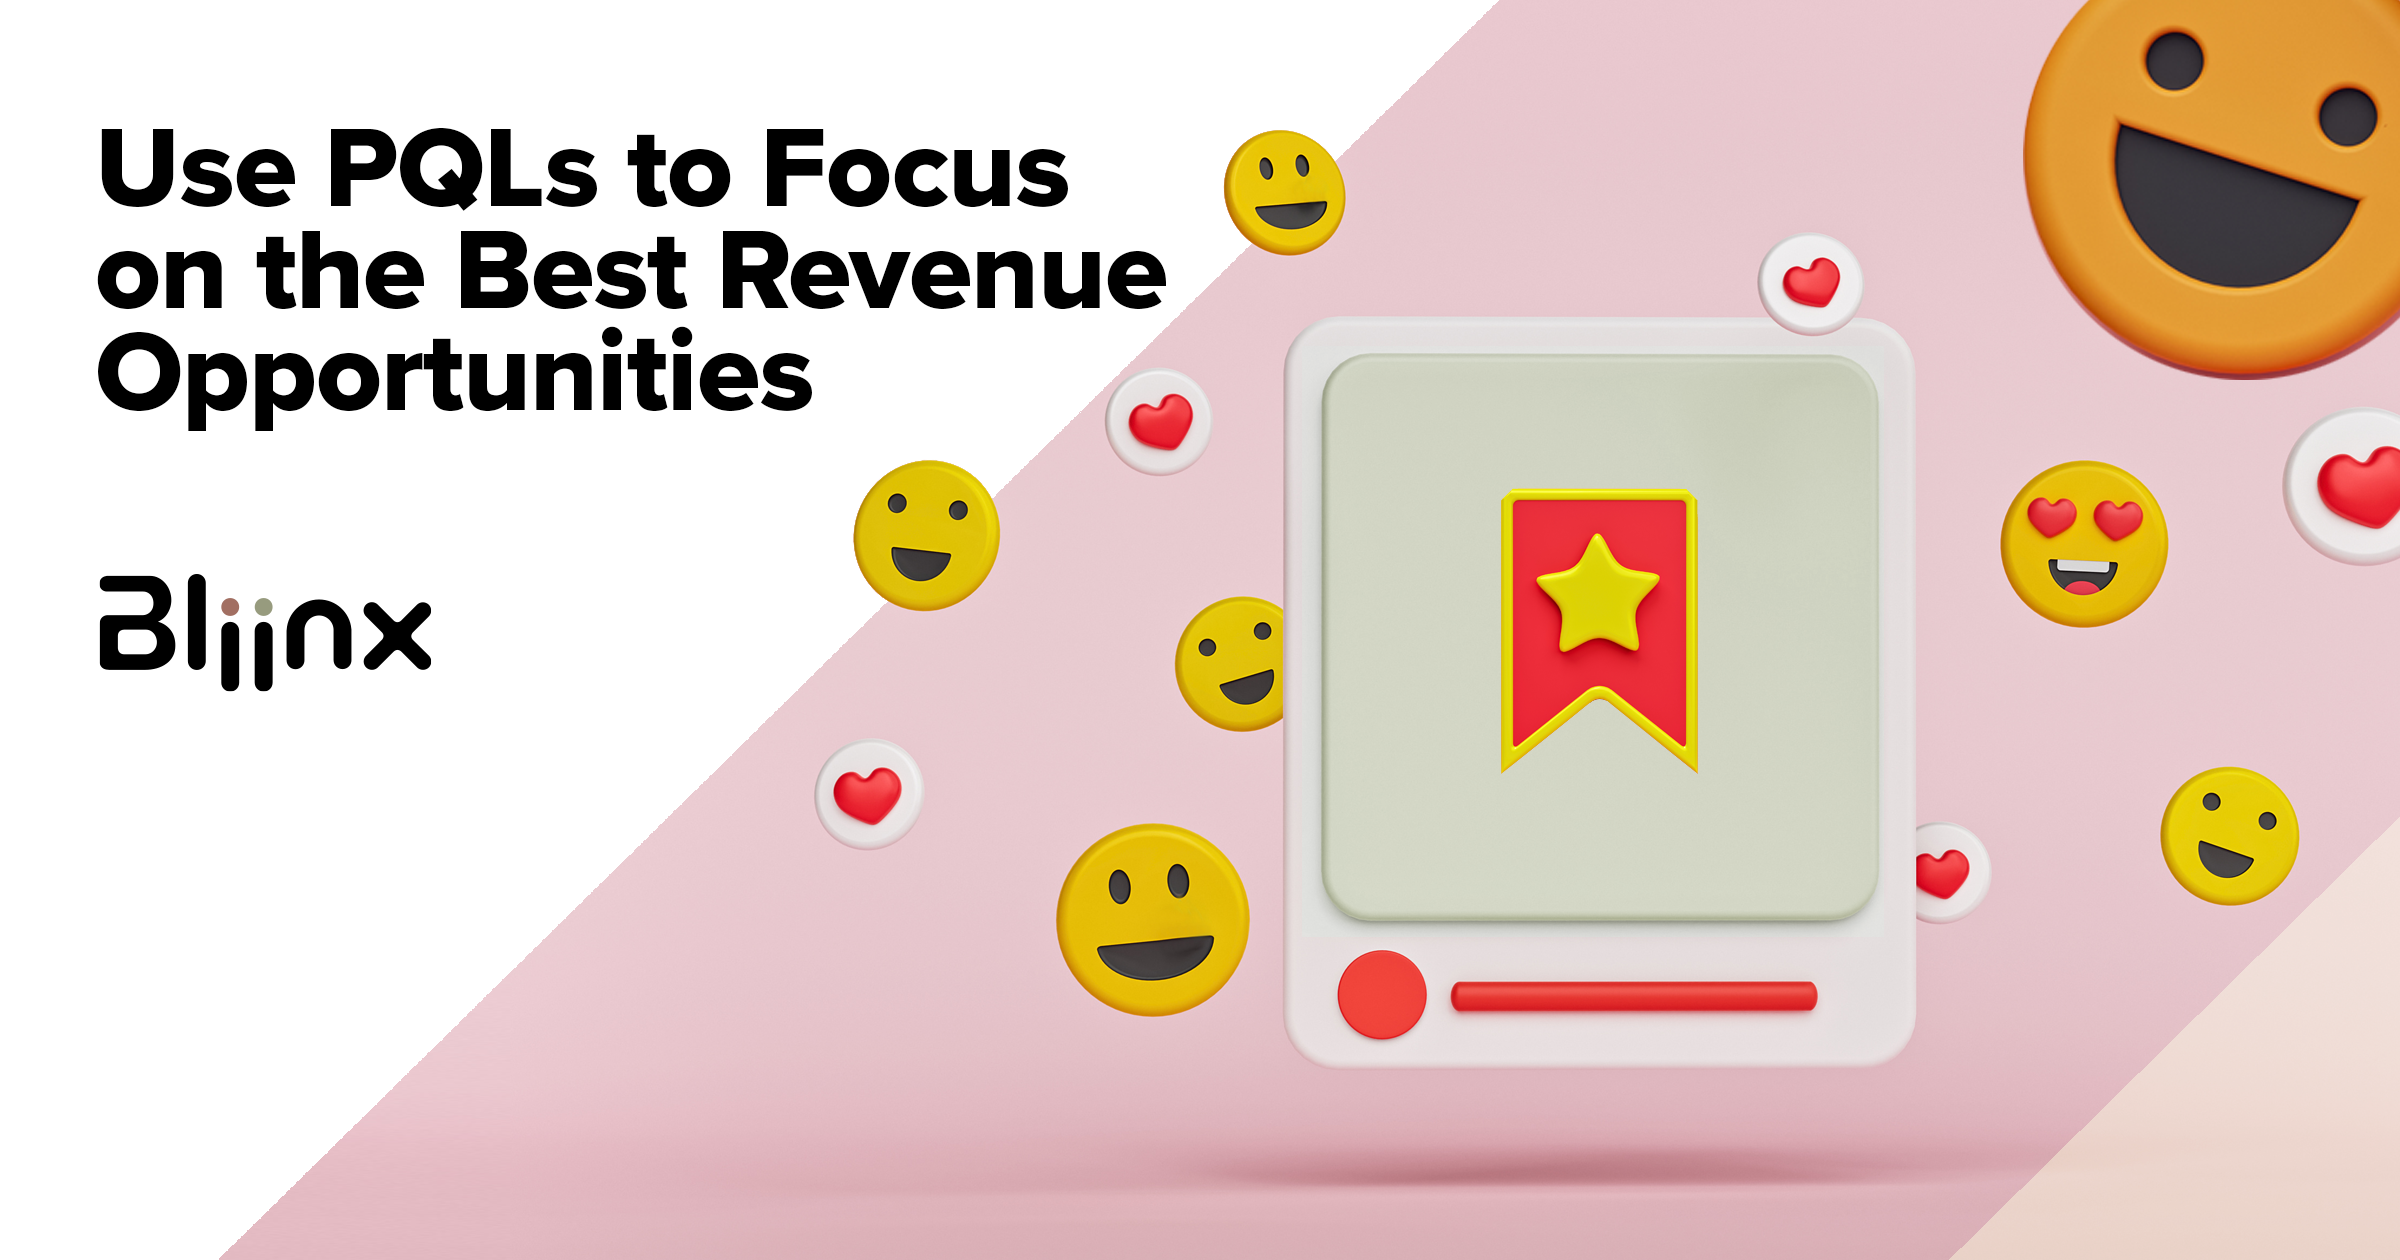 Using PQLs to focus on the best revenue opportunities